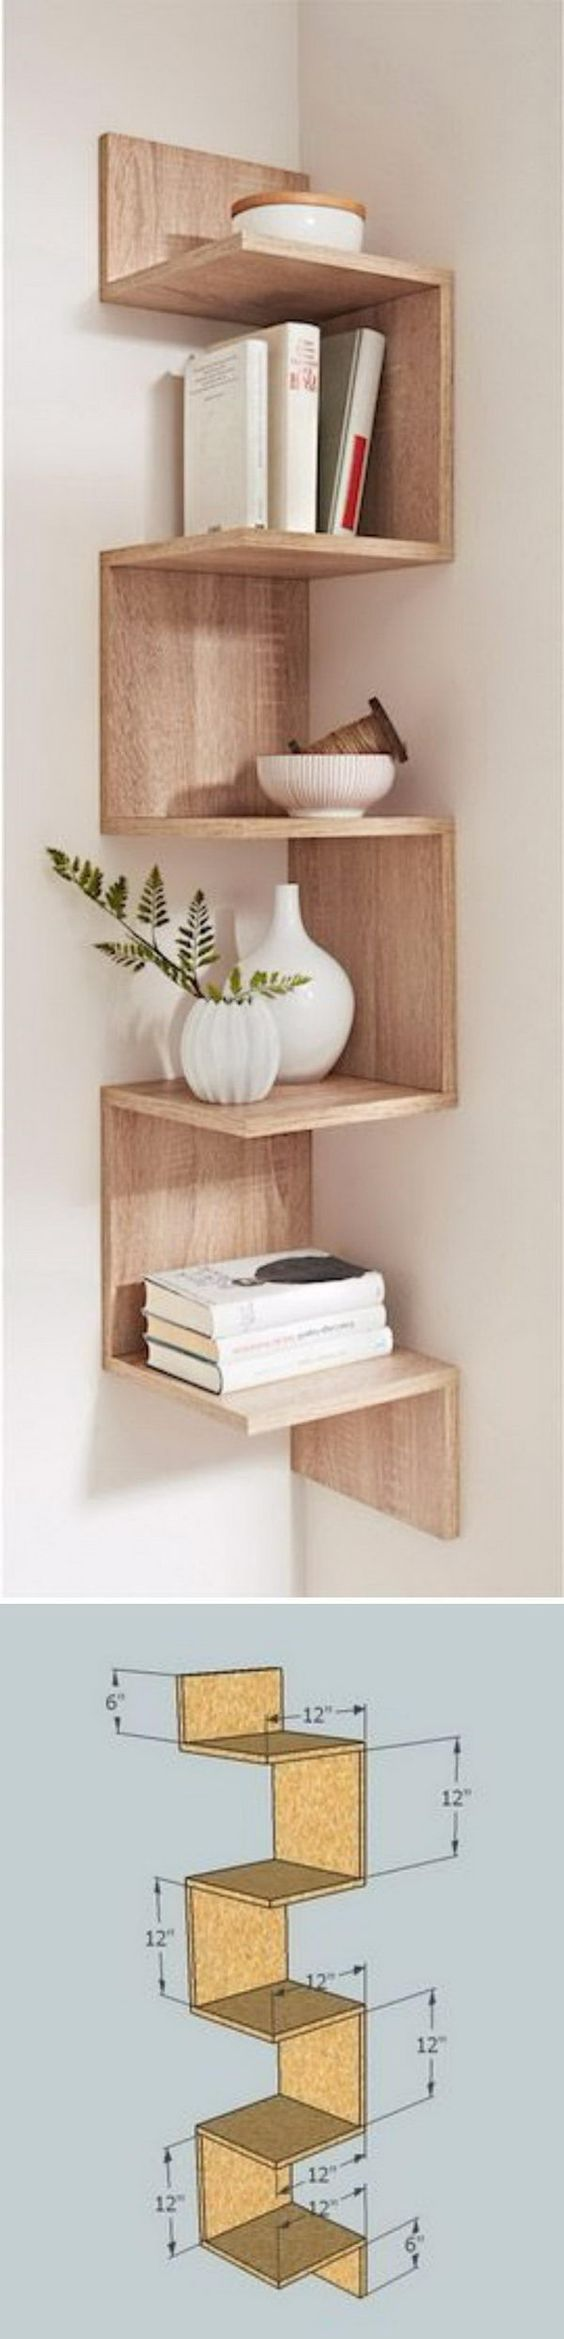 Cool Shelving Fascinating Best 25 Shelf Ideas Ideas On Pinterest  Shelves Box Shelves And . Inspiration